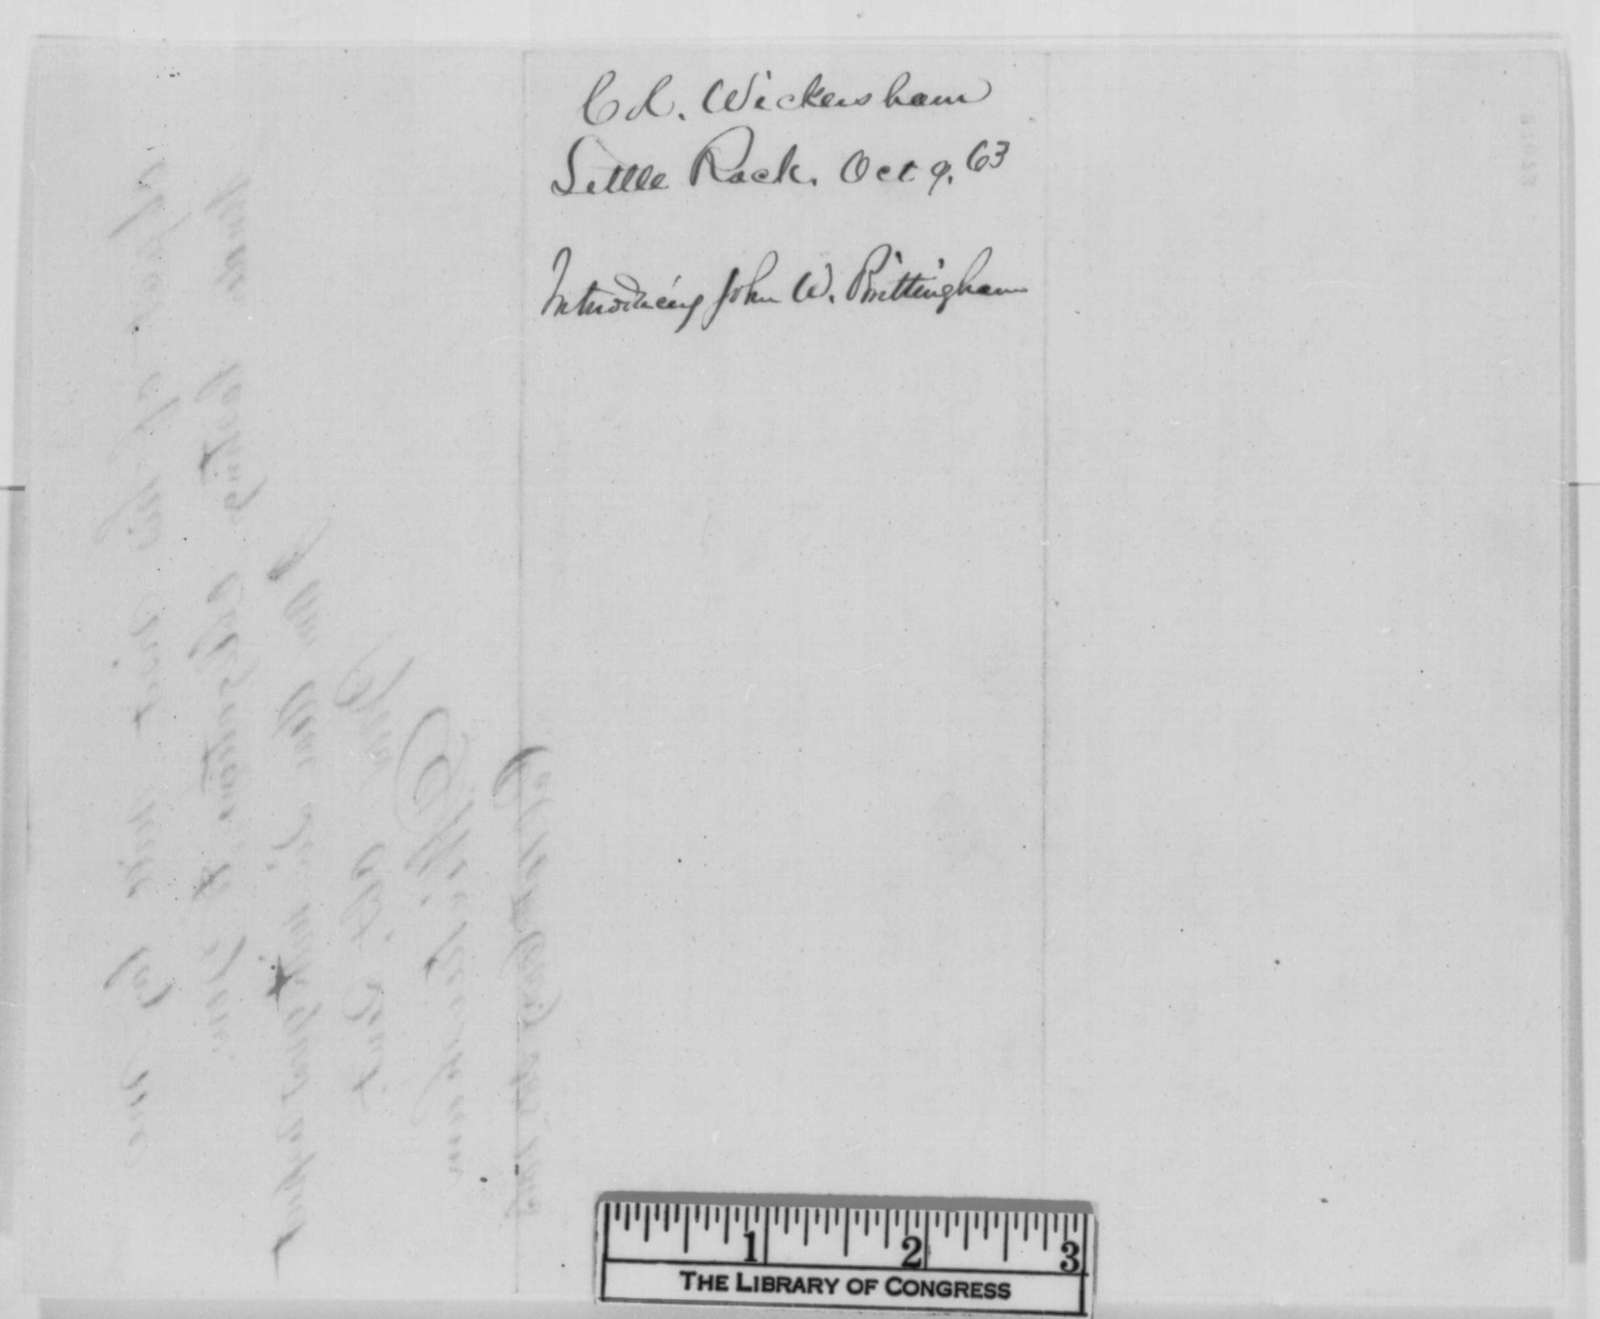 Dudley Wickersham to Abraham Lincoln, Friday, October 09, 1863  (Introduces John W. Brittingham)